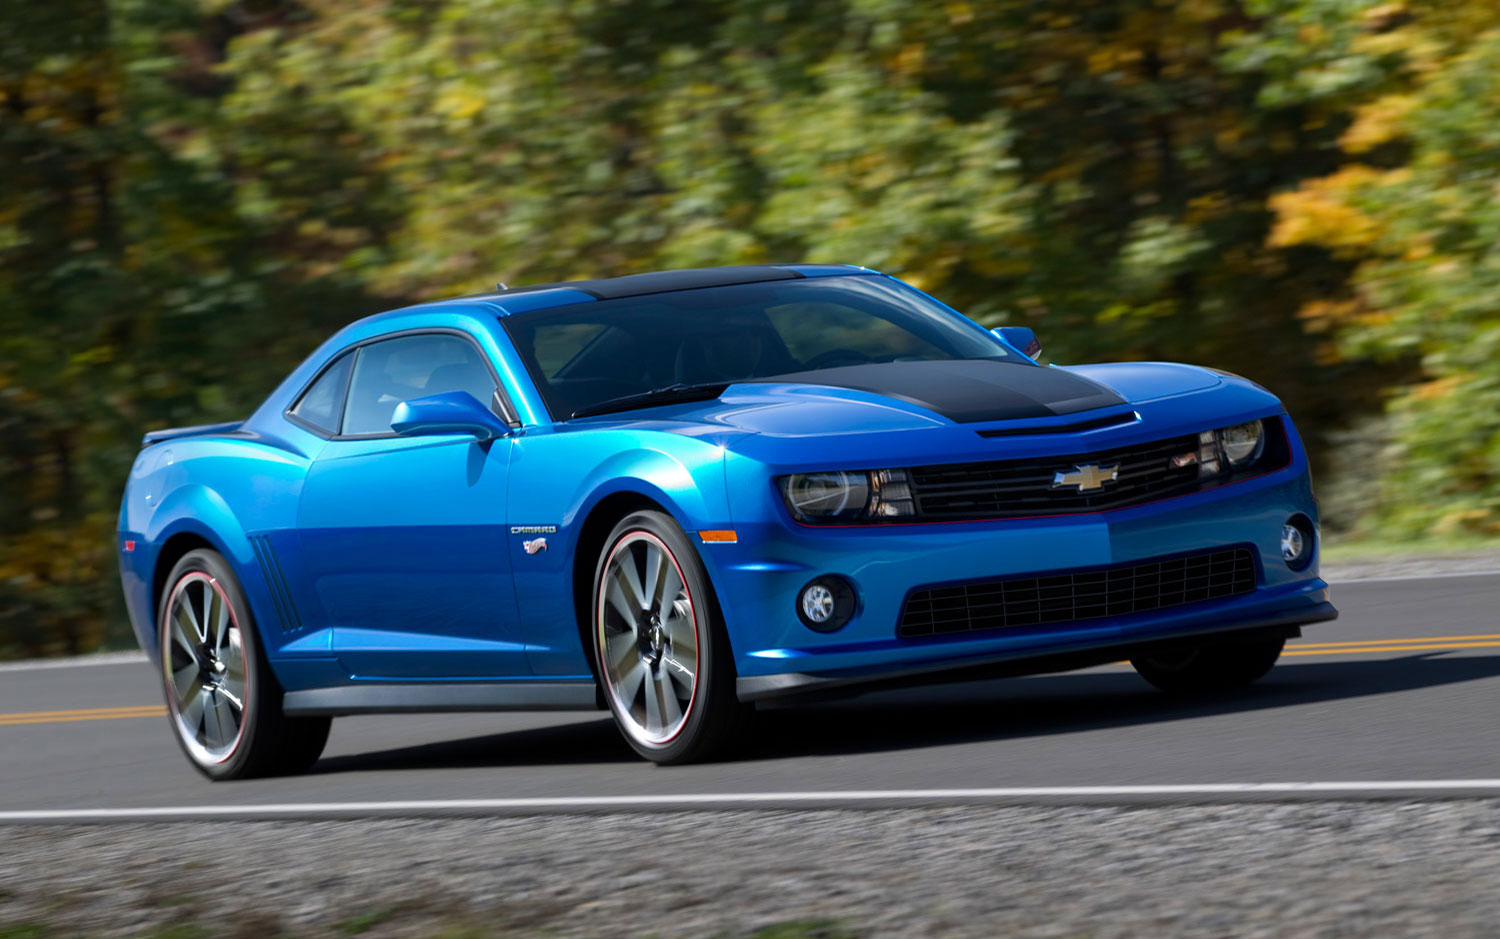 Cars Model 2013 2014 Top 7 Bowties 2014 Chevrolet Impala New And Old Camaros